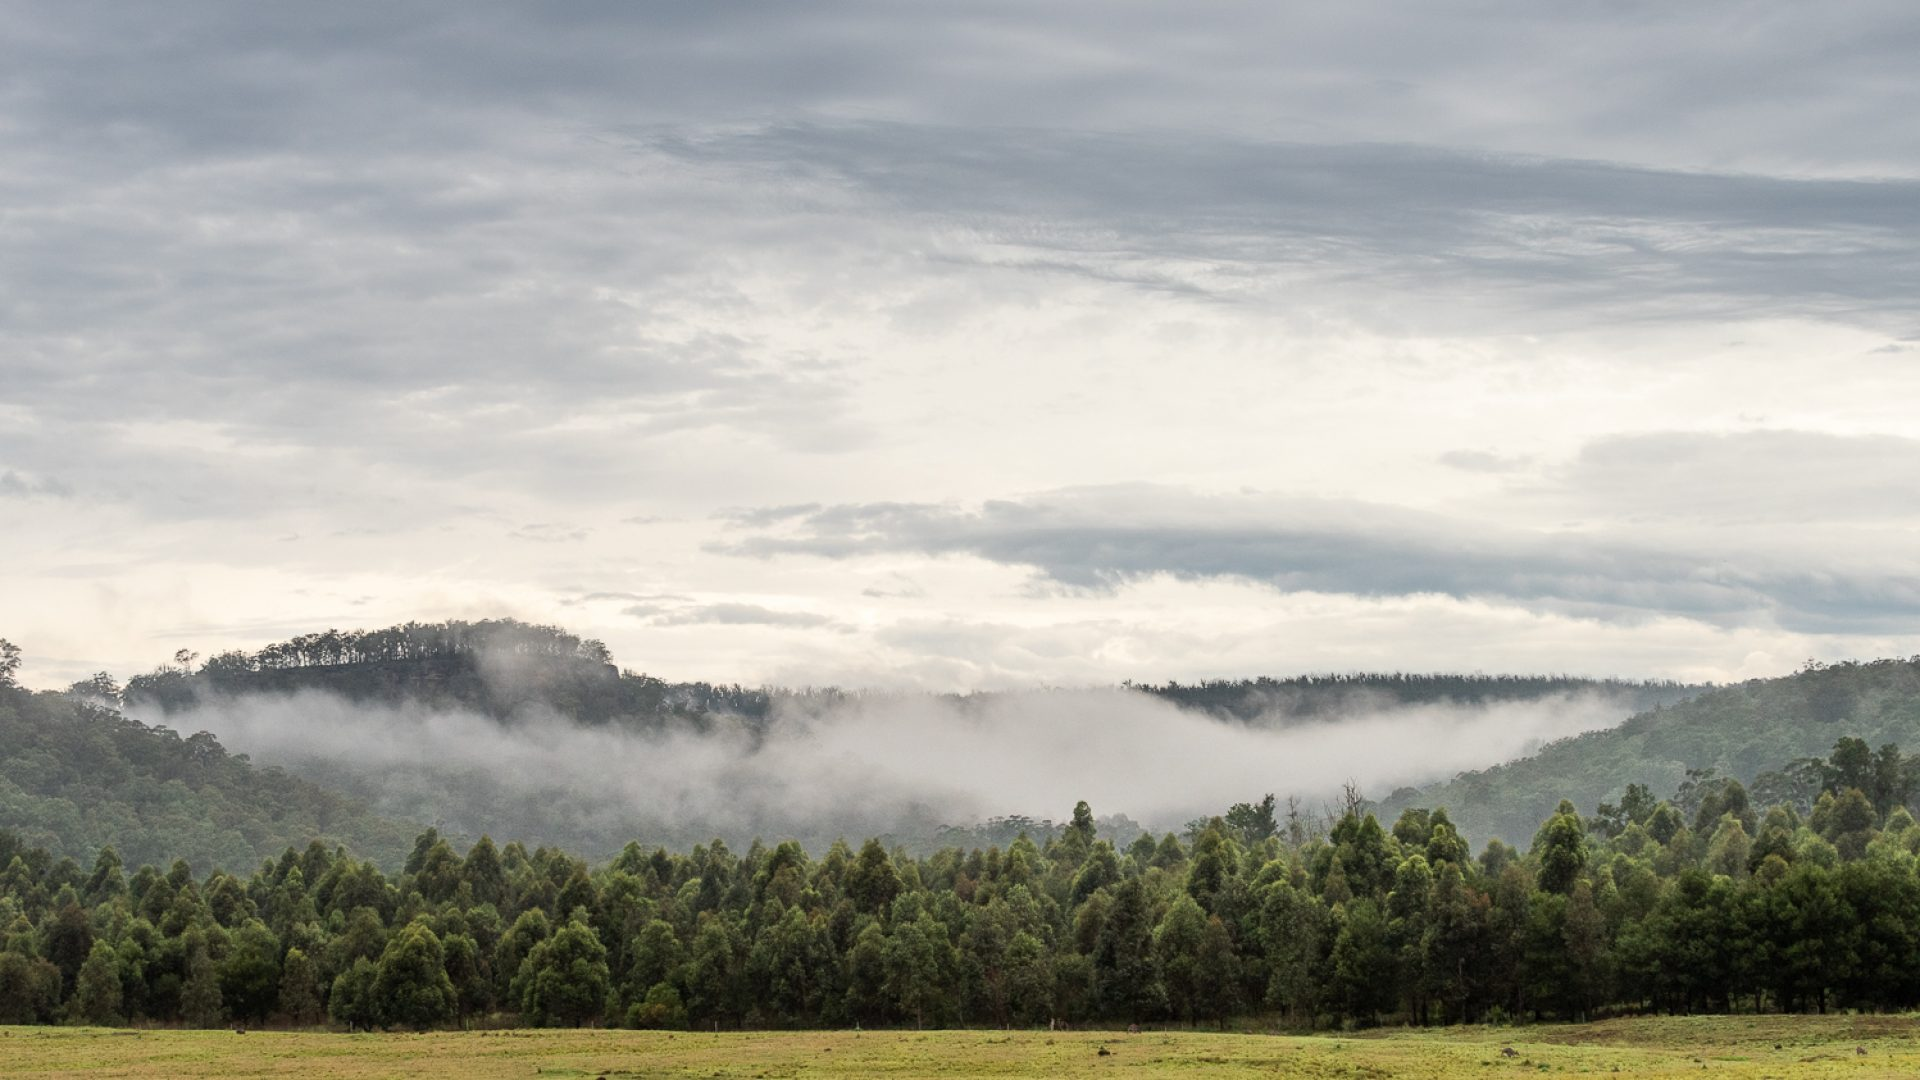 A forest of trees with a mountain range behind and low clouds above the trees